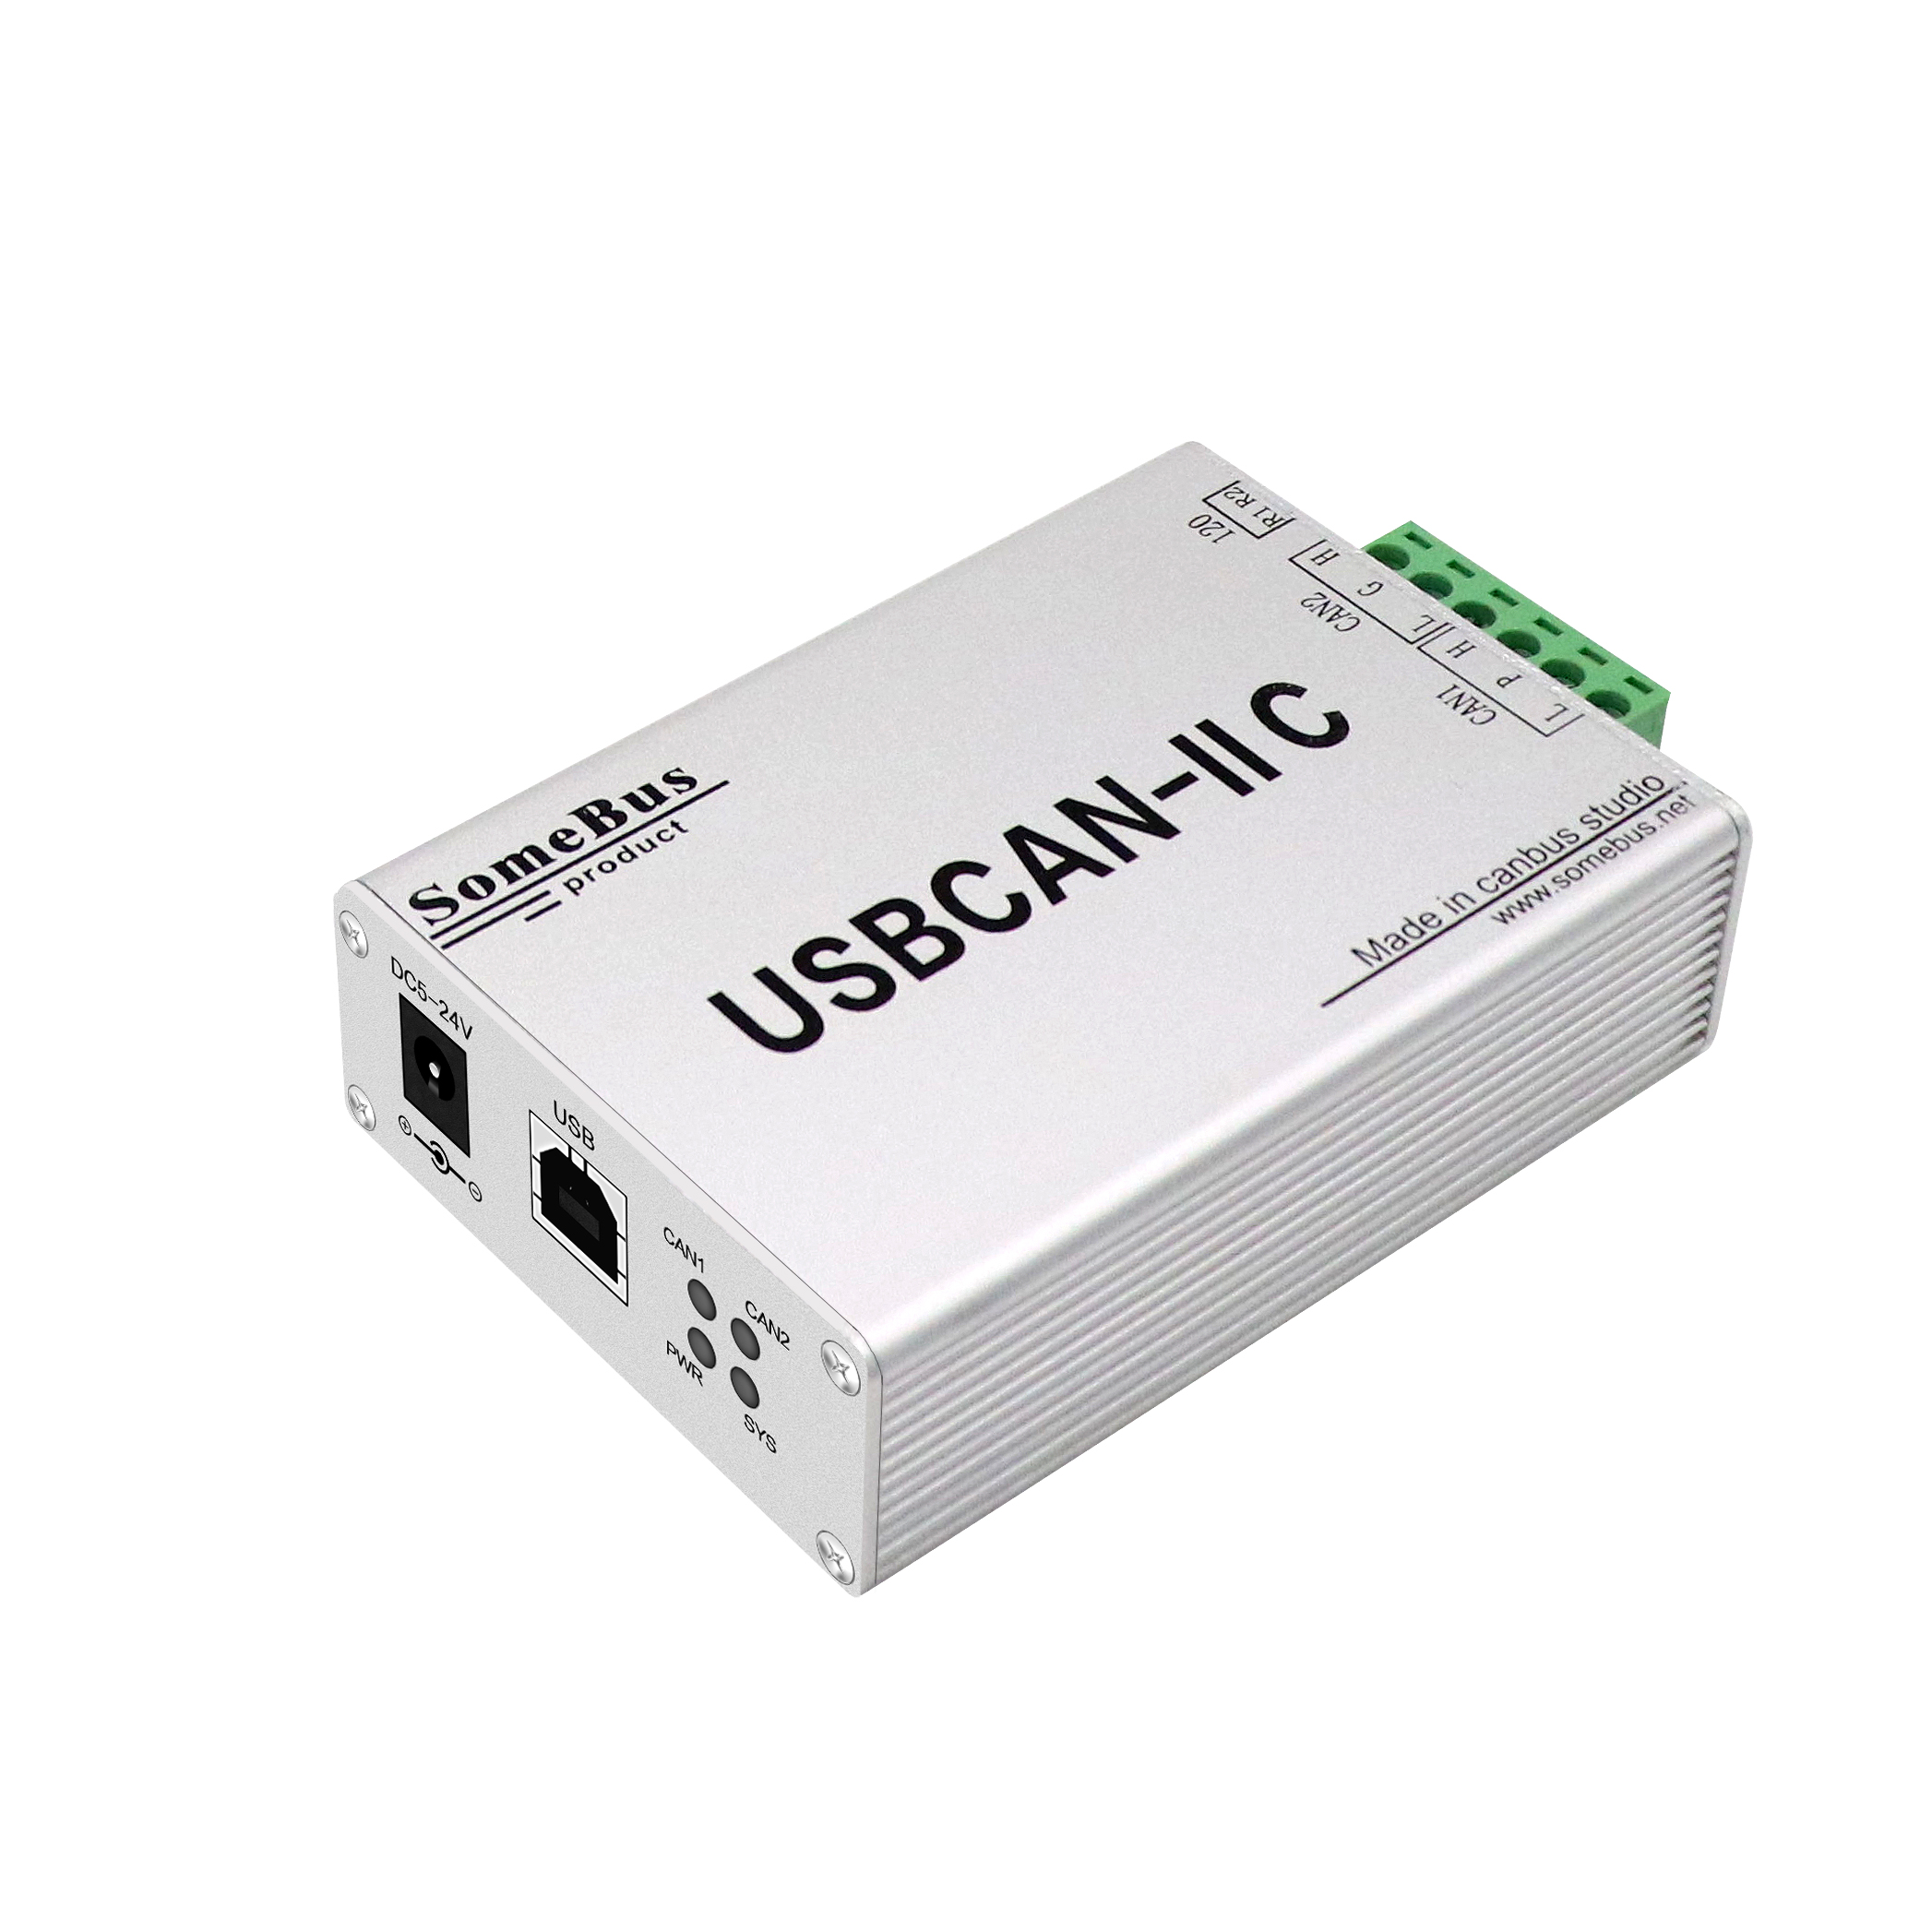 CAN To USB Interface For Engineer CAN Analyzer Dual Channels Are Used For Data Reception, Transmission And Detection.